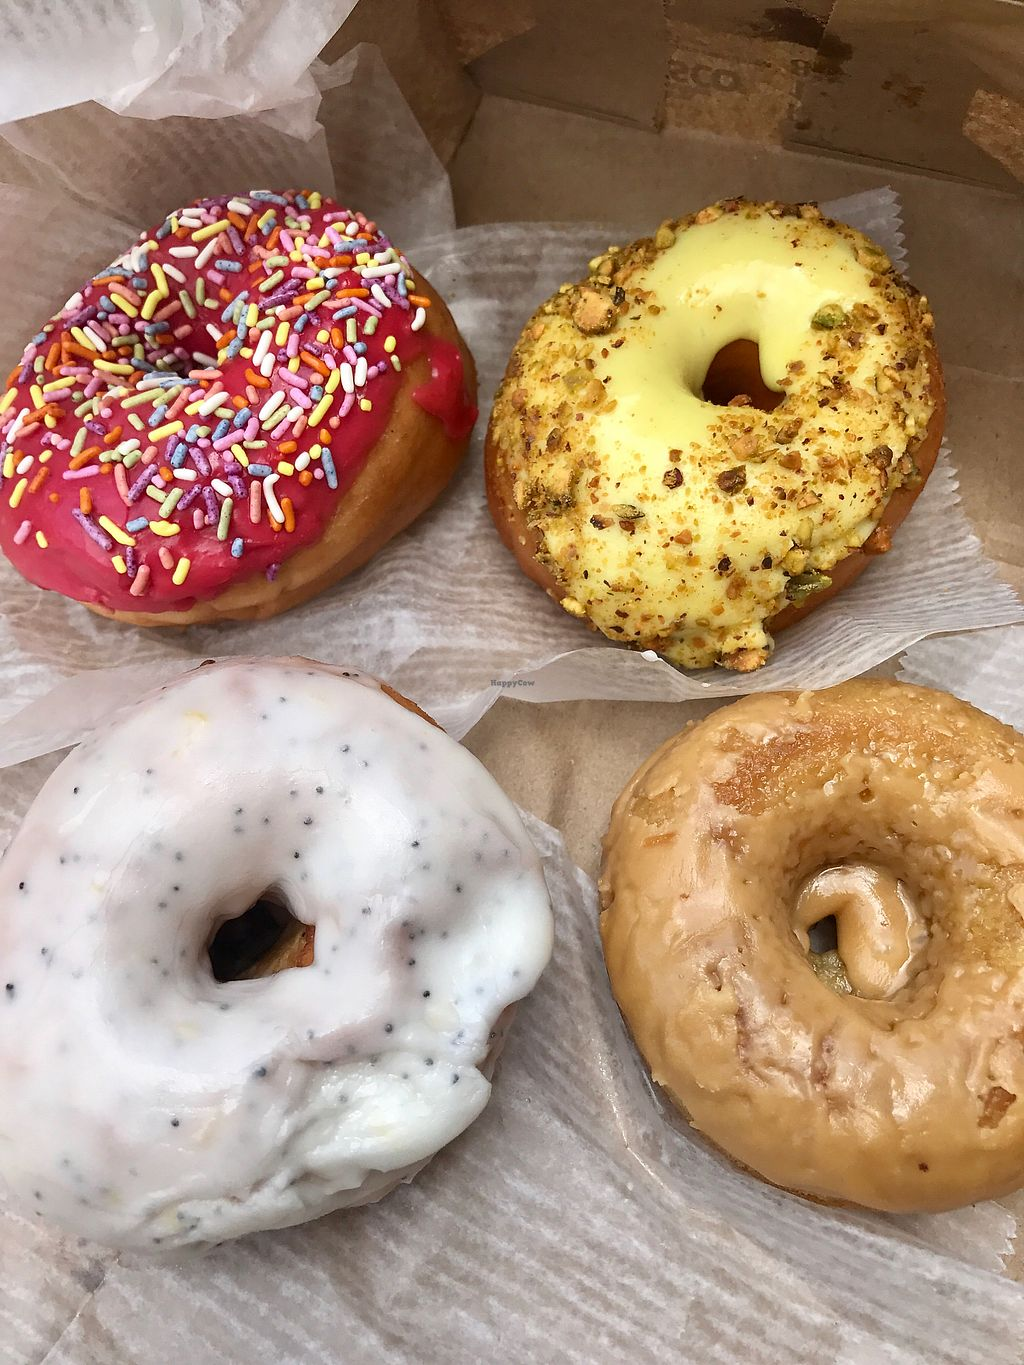 """Photo of Revolution Doughnuts  by <a href=""""/members/profile/melissapedroso"""">melissapedroso</a> <br/>yum <br/> July 12, 2017  - <a href='/contact/abuse/image/32680/279640'>Report</a>"""